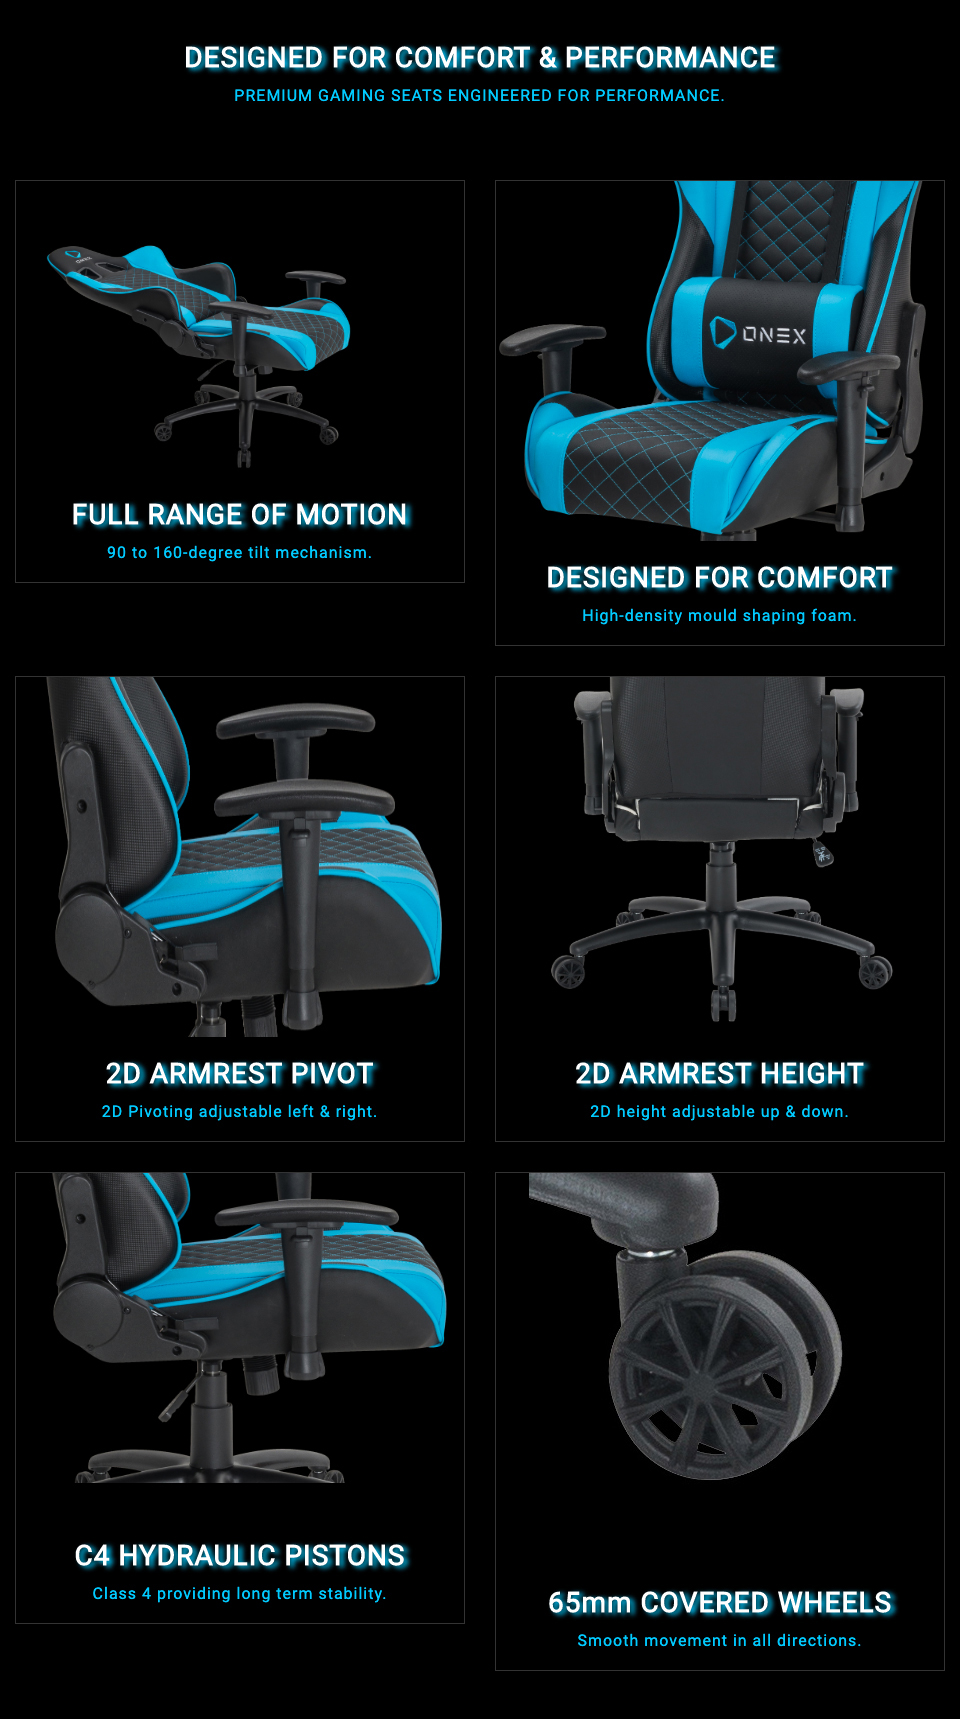 ONEX GX3 Gaming Chair Black Navy features